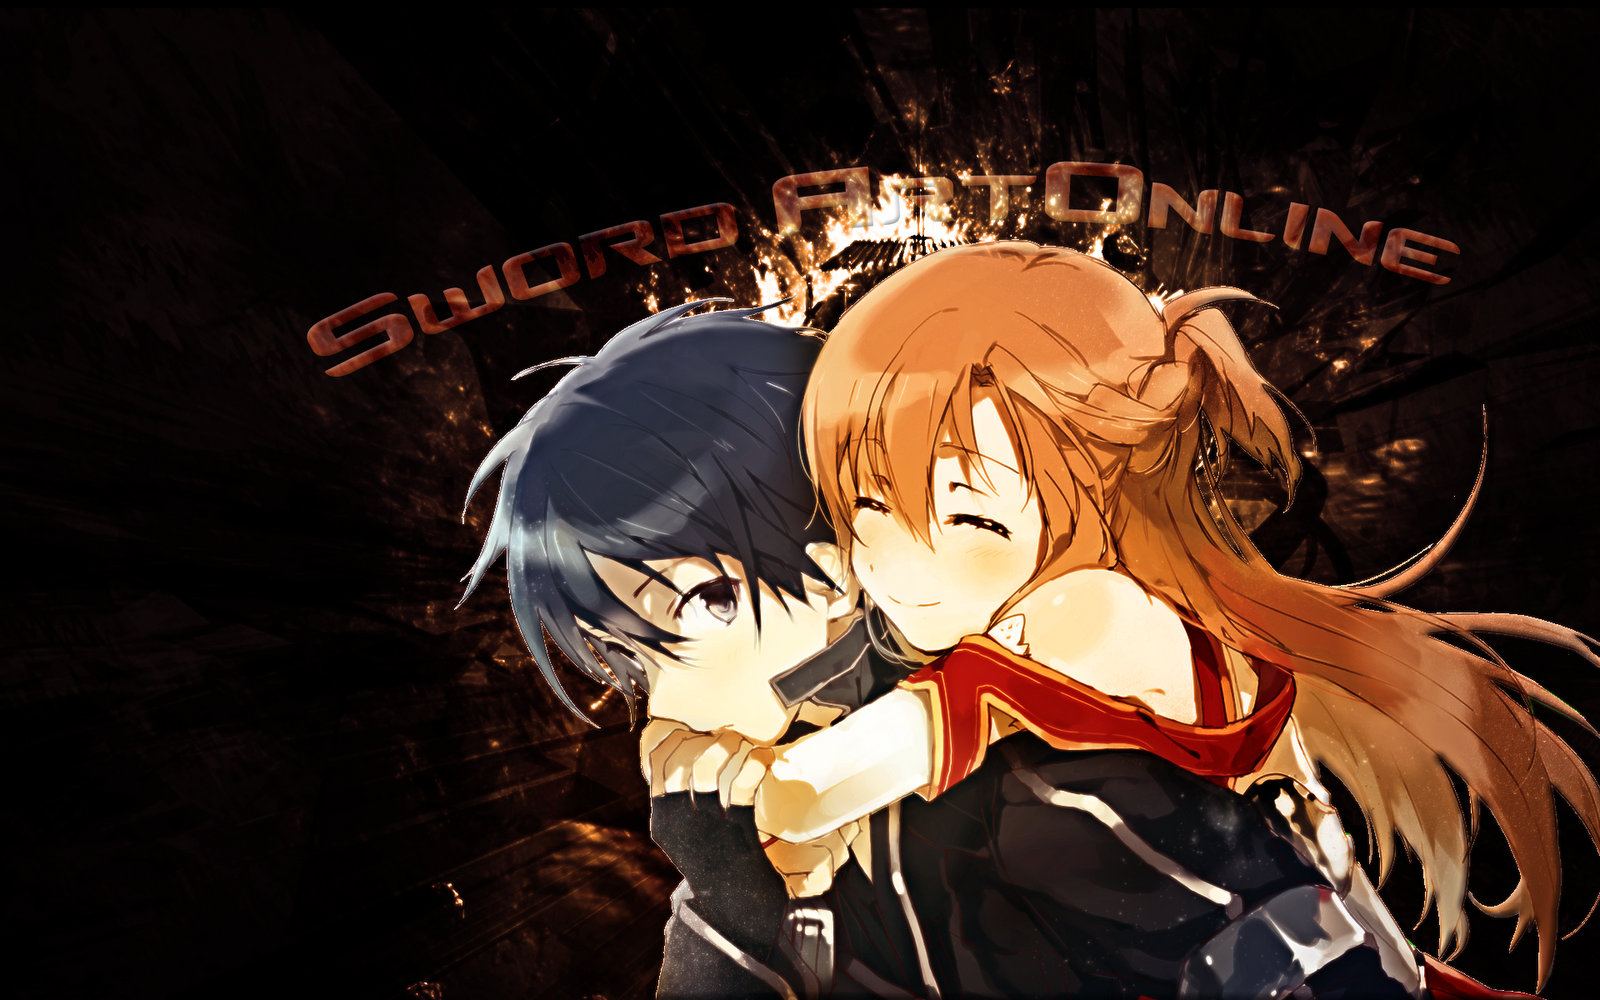 Sword Art OnlineSAO Review 1600x1000